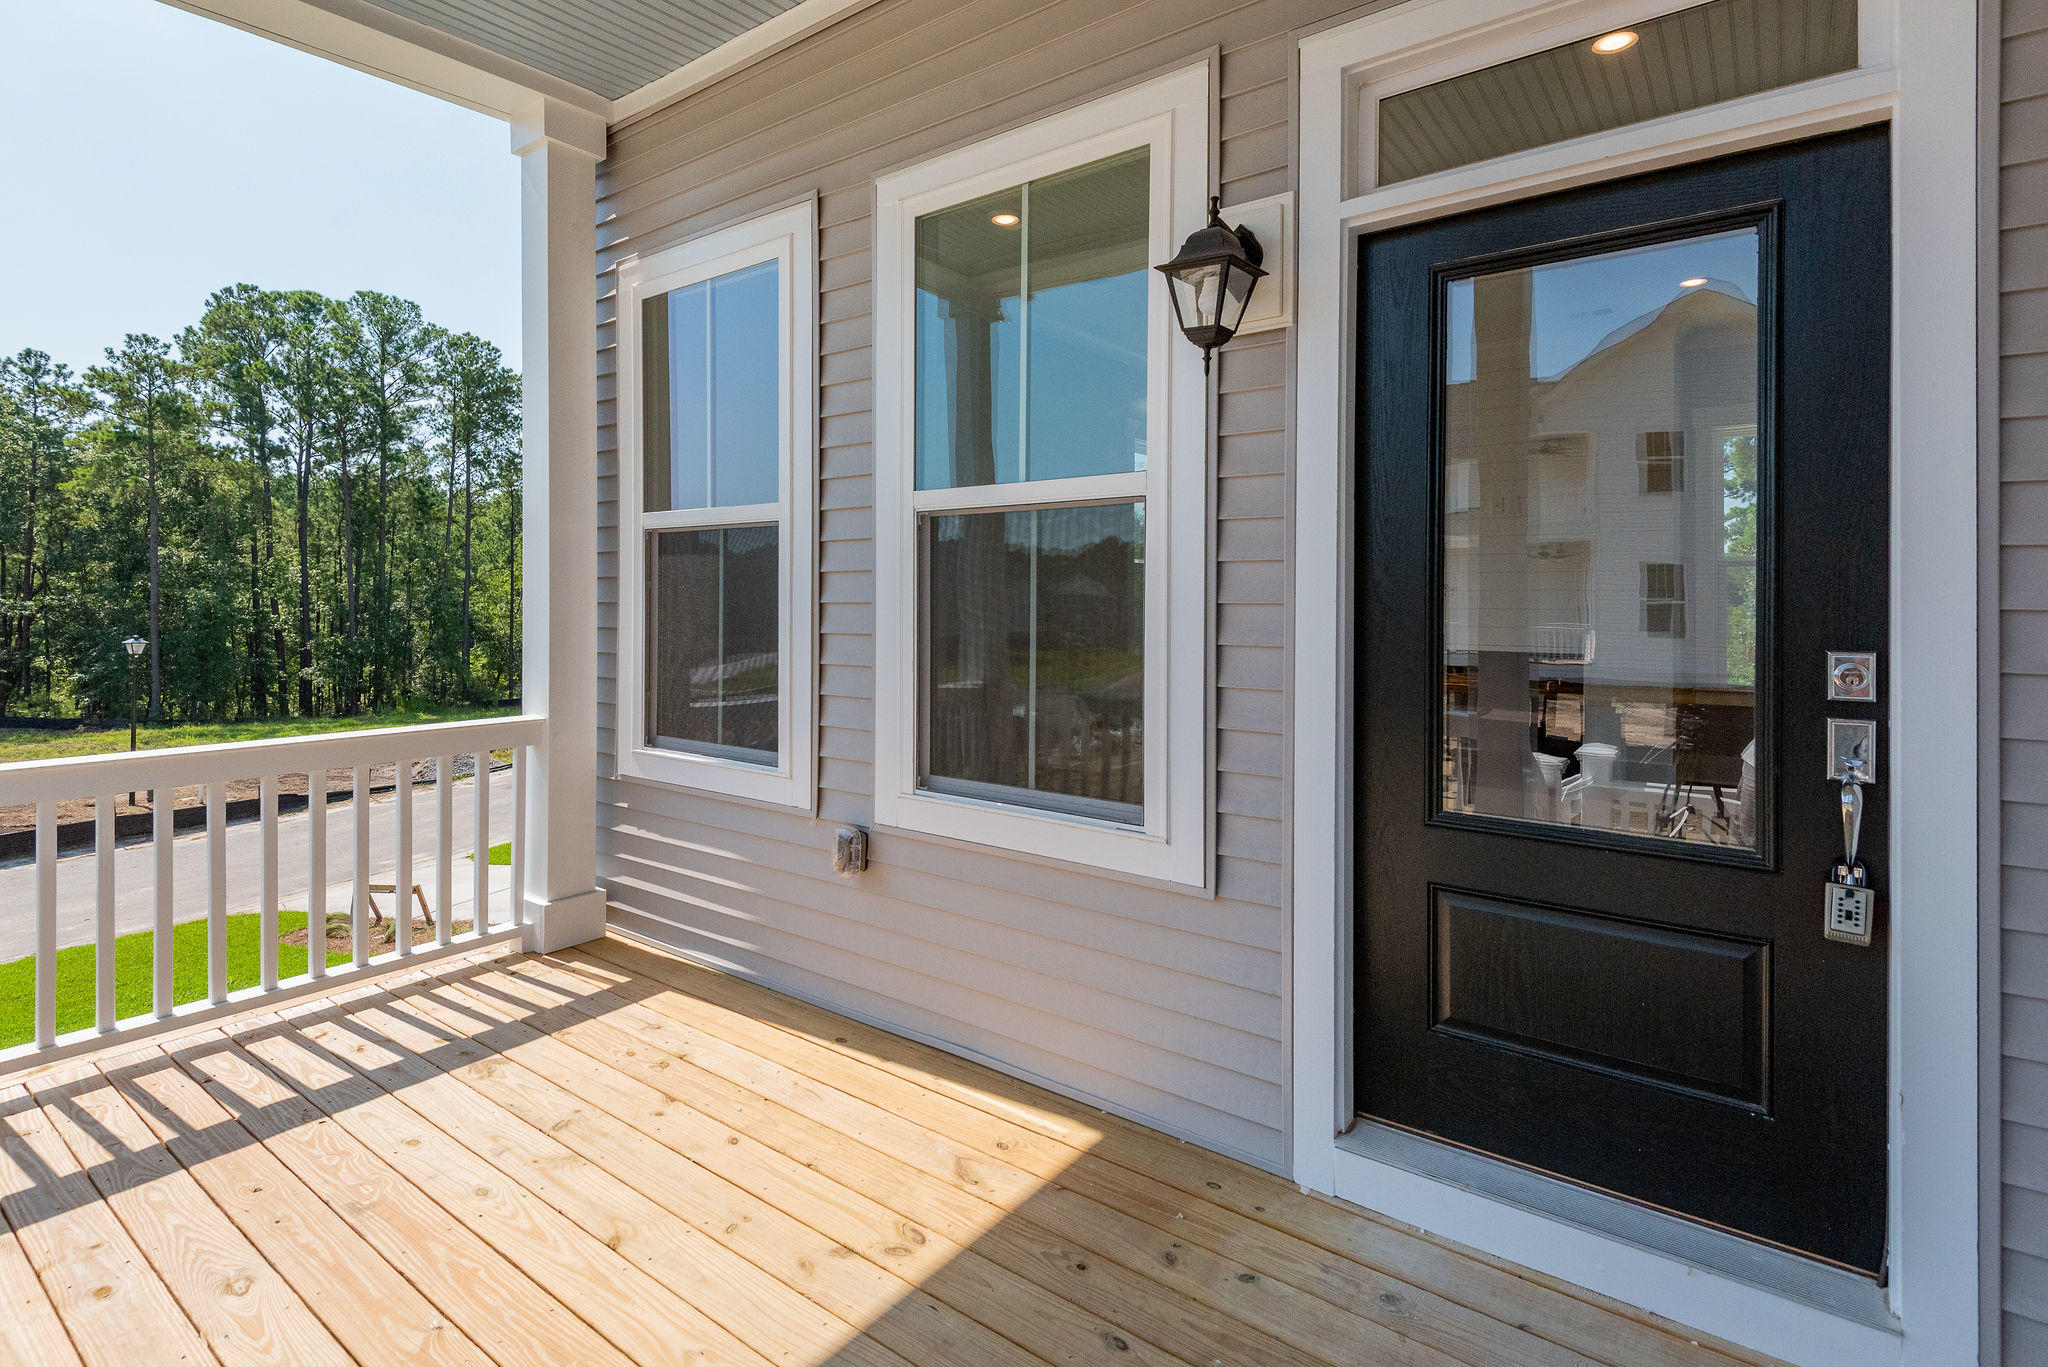 The Cove at Martins Creek Homes For Sale - 117 Martins Point, Wando, SC - 31